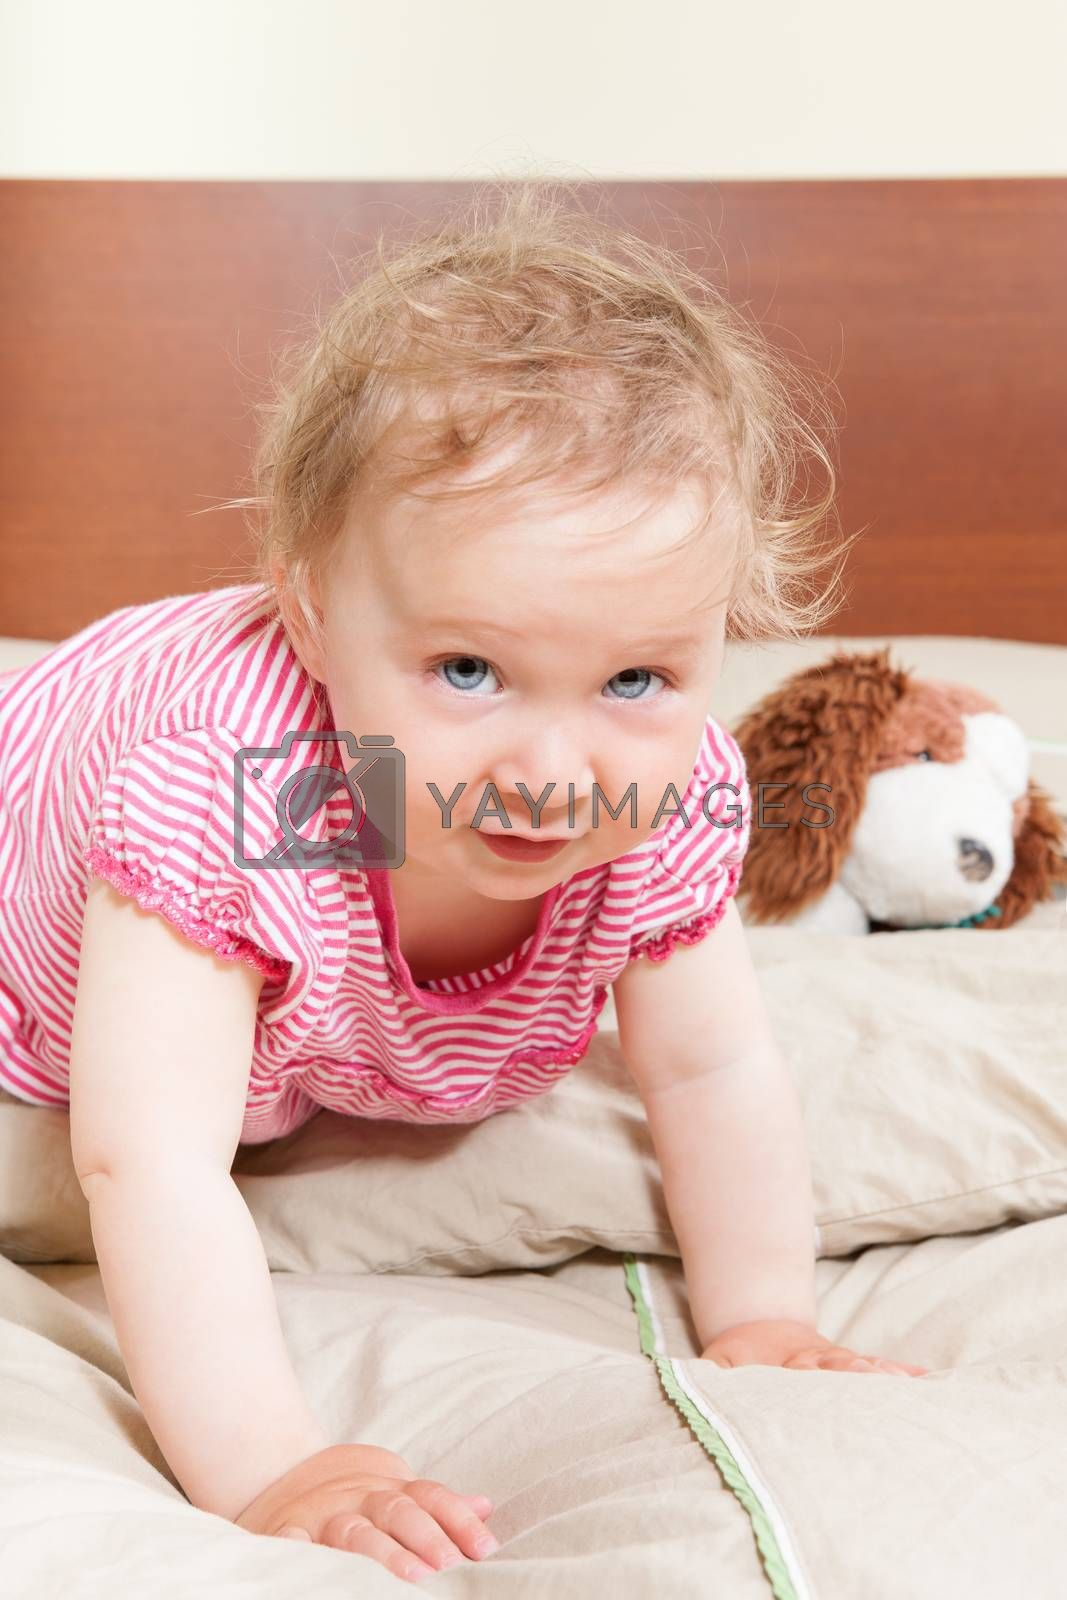 Cute adorable 12 month old baby girl with big blue eyes on bed with her favorite toy looking into camera.